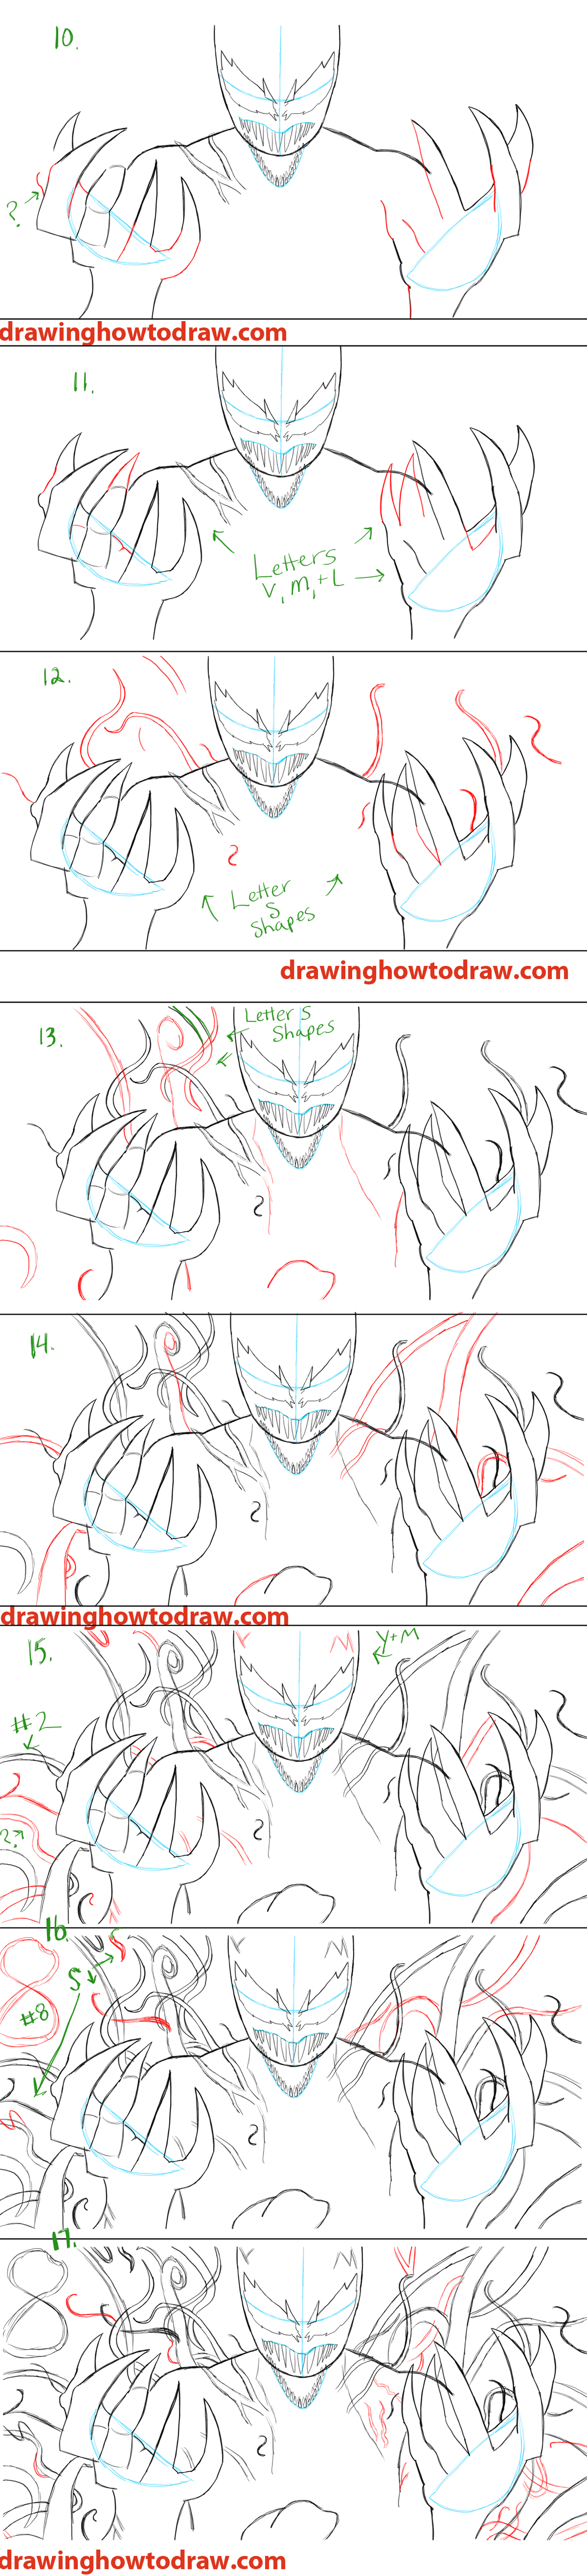 Learn How to Draw Spiderman Carnage from Marvel Comics Easy Step by Step Realistic Drawing Lesson